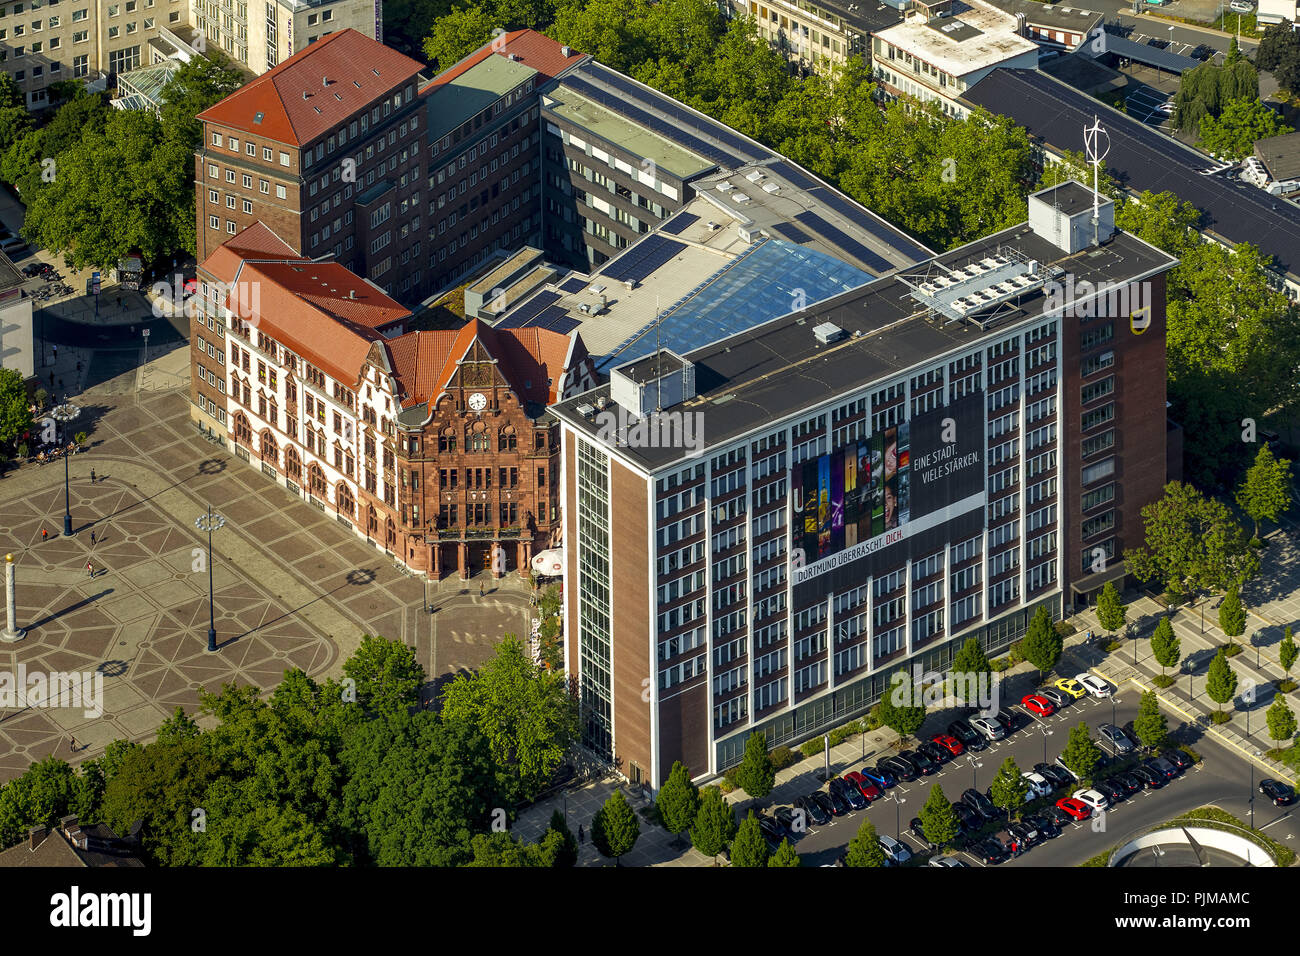 Dortmund, city administration Office for Housing and Urban Renewal, Dortmund, Ruhr Area, North Rhine-Westphalia, Germany - Stock Image